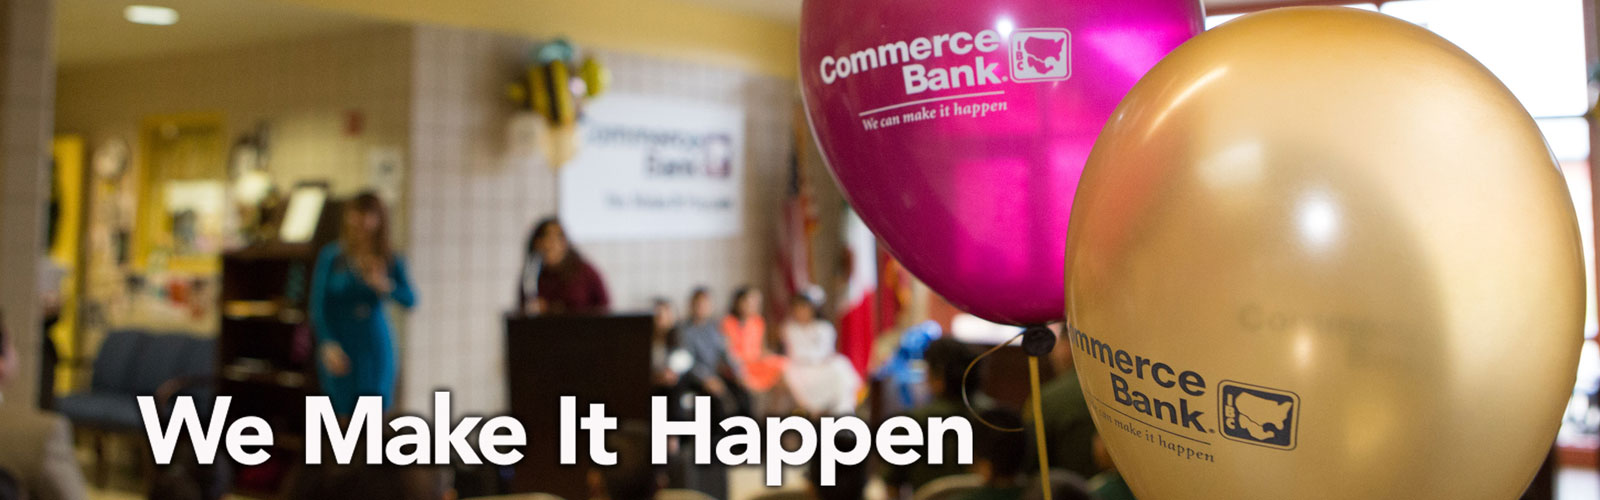 We Make it Happen Commerce Bank